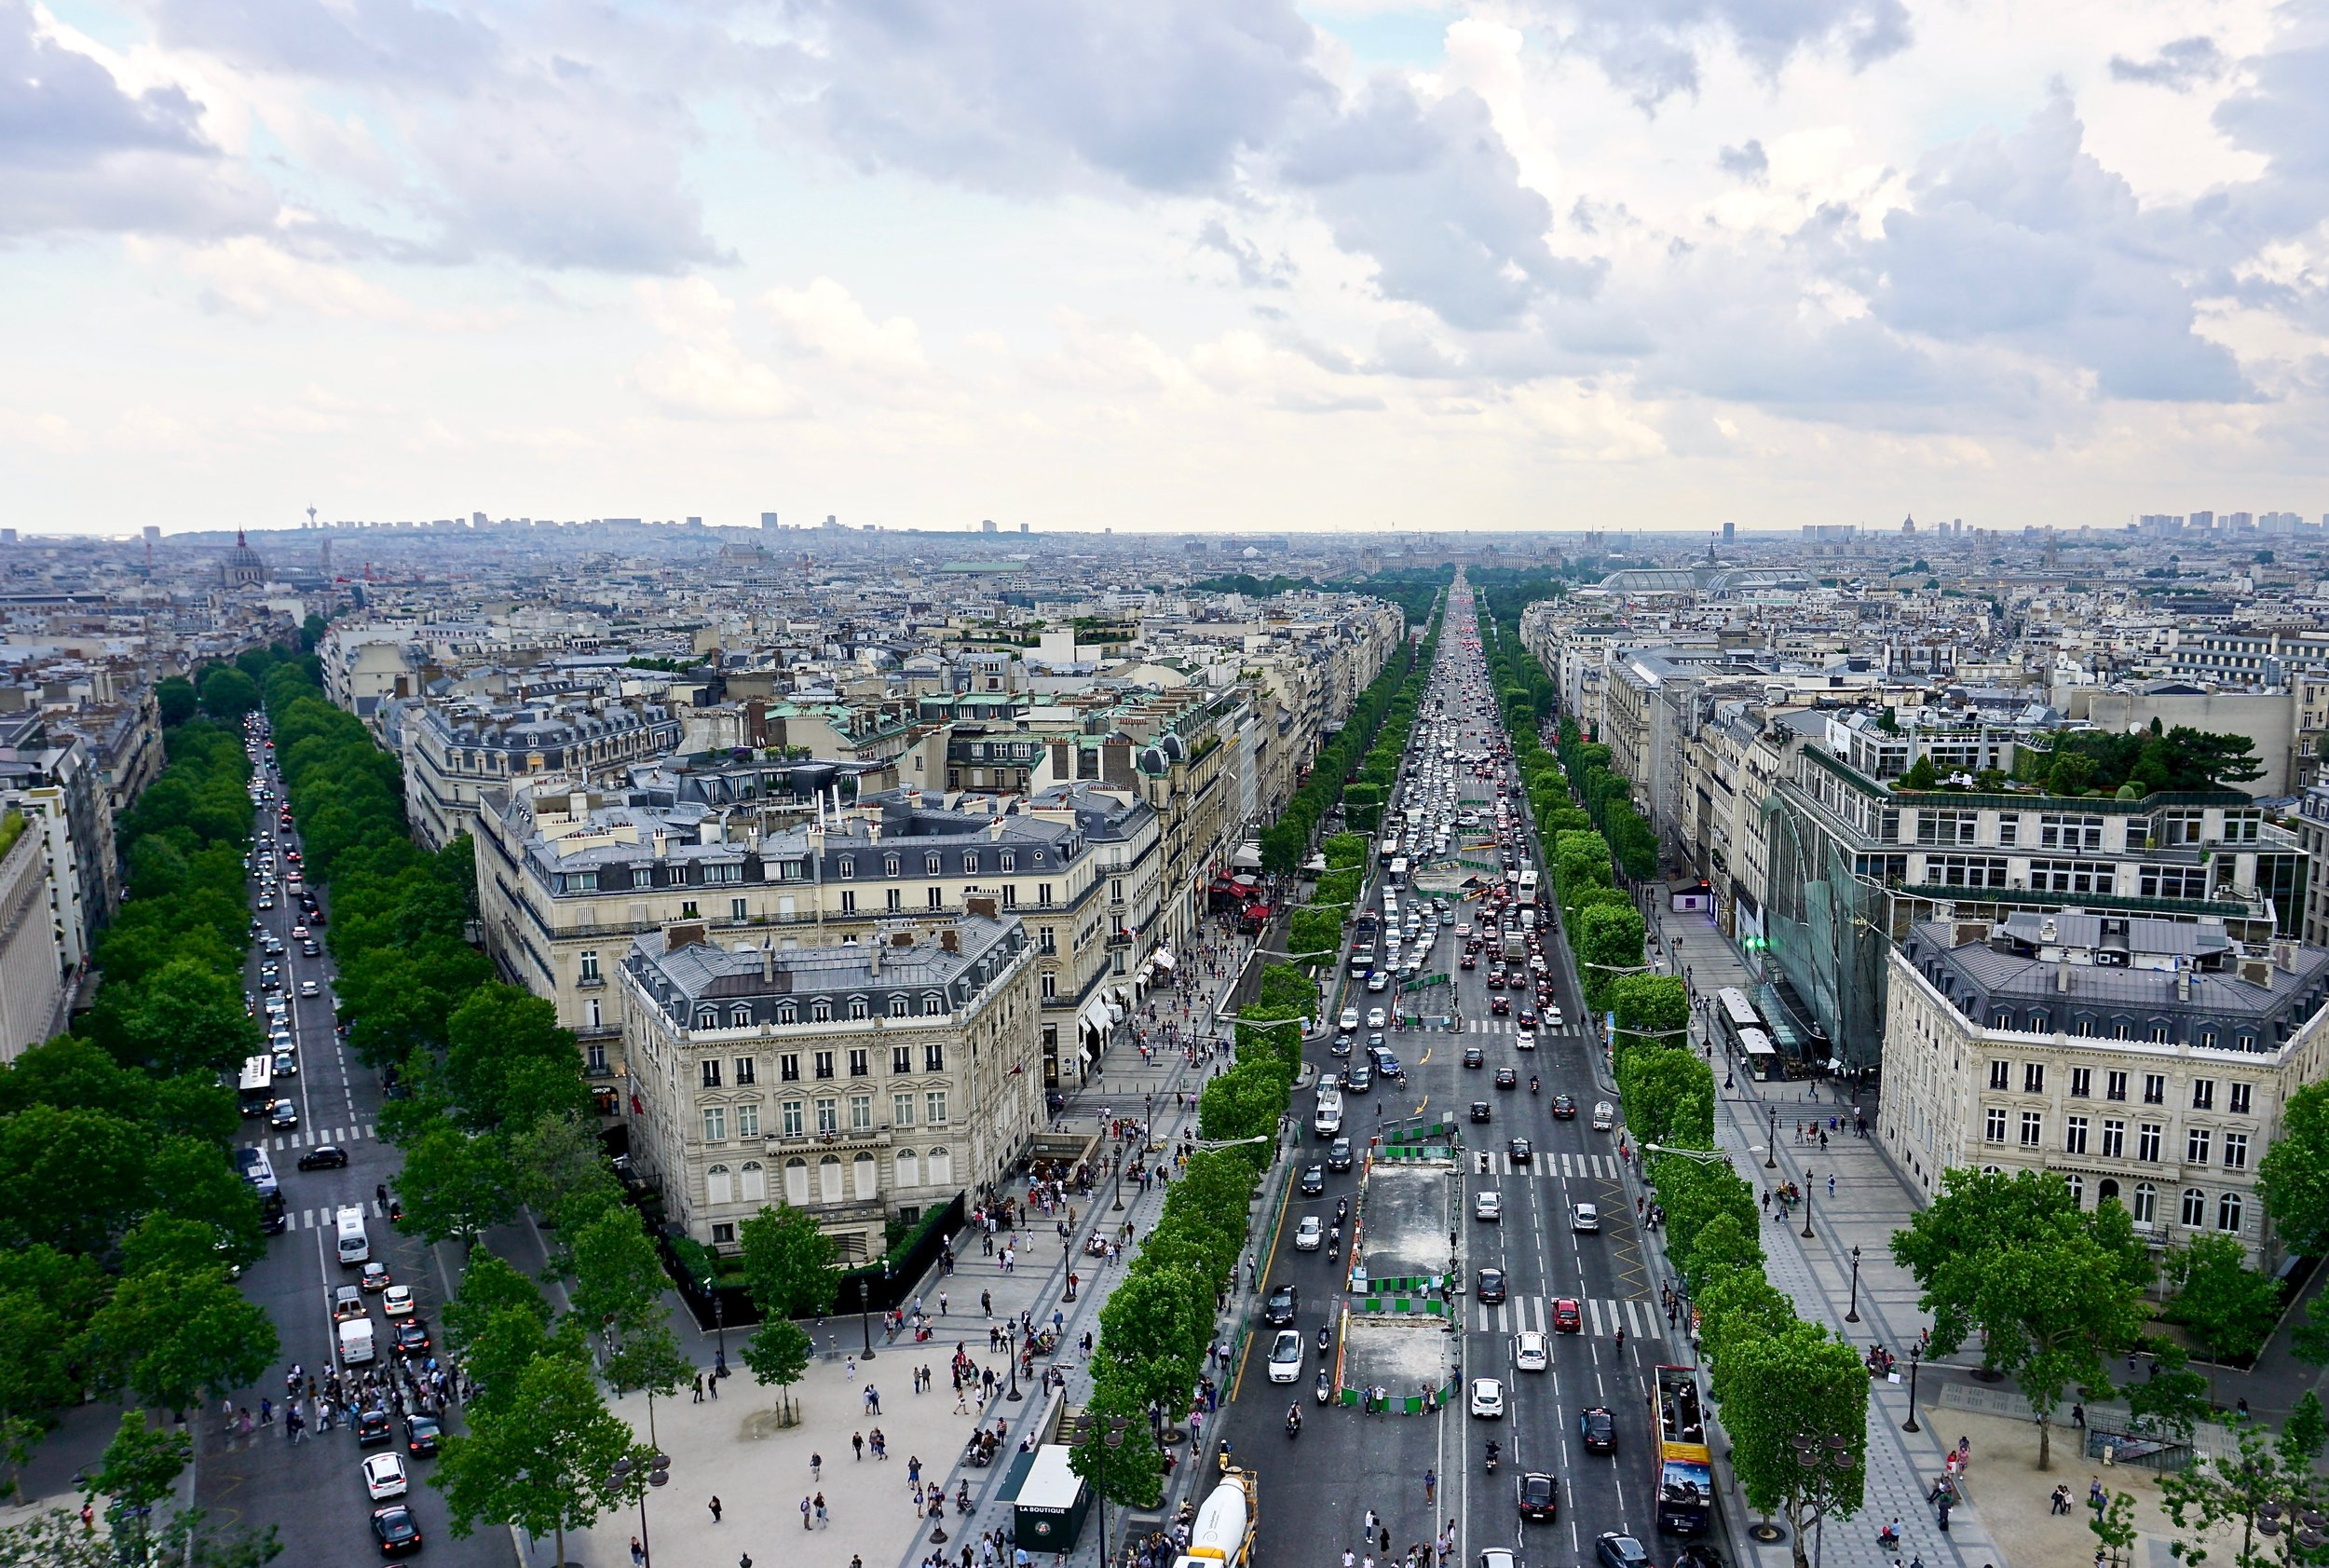 View of the the Champs-Élysée from the top of the Arc de Triomphe